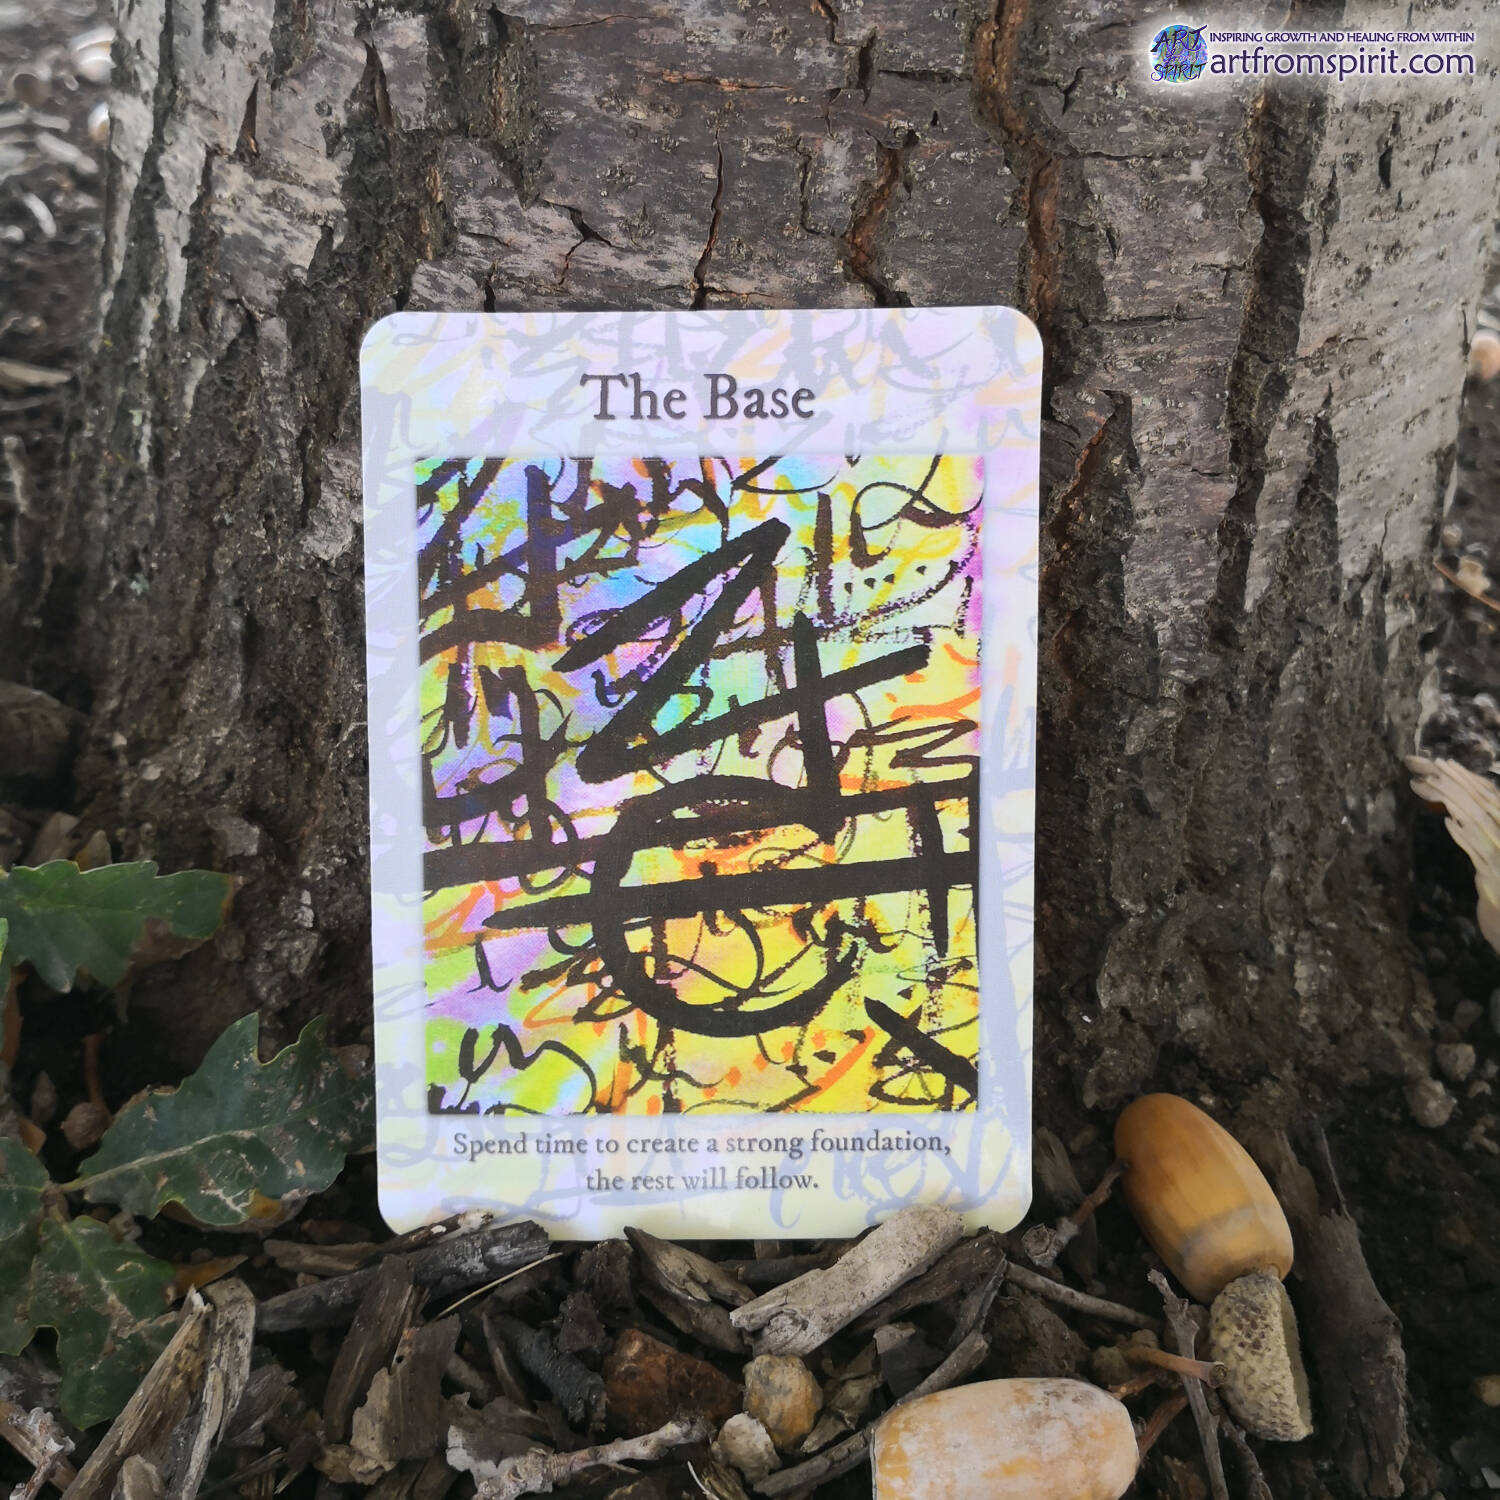 the-base-art-from-spirit-tegan-neville-spiritual-inspiration-card.jpg